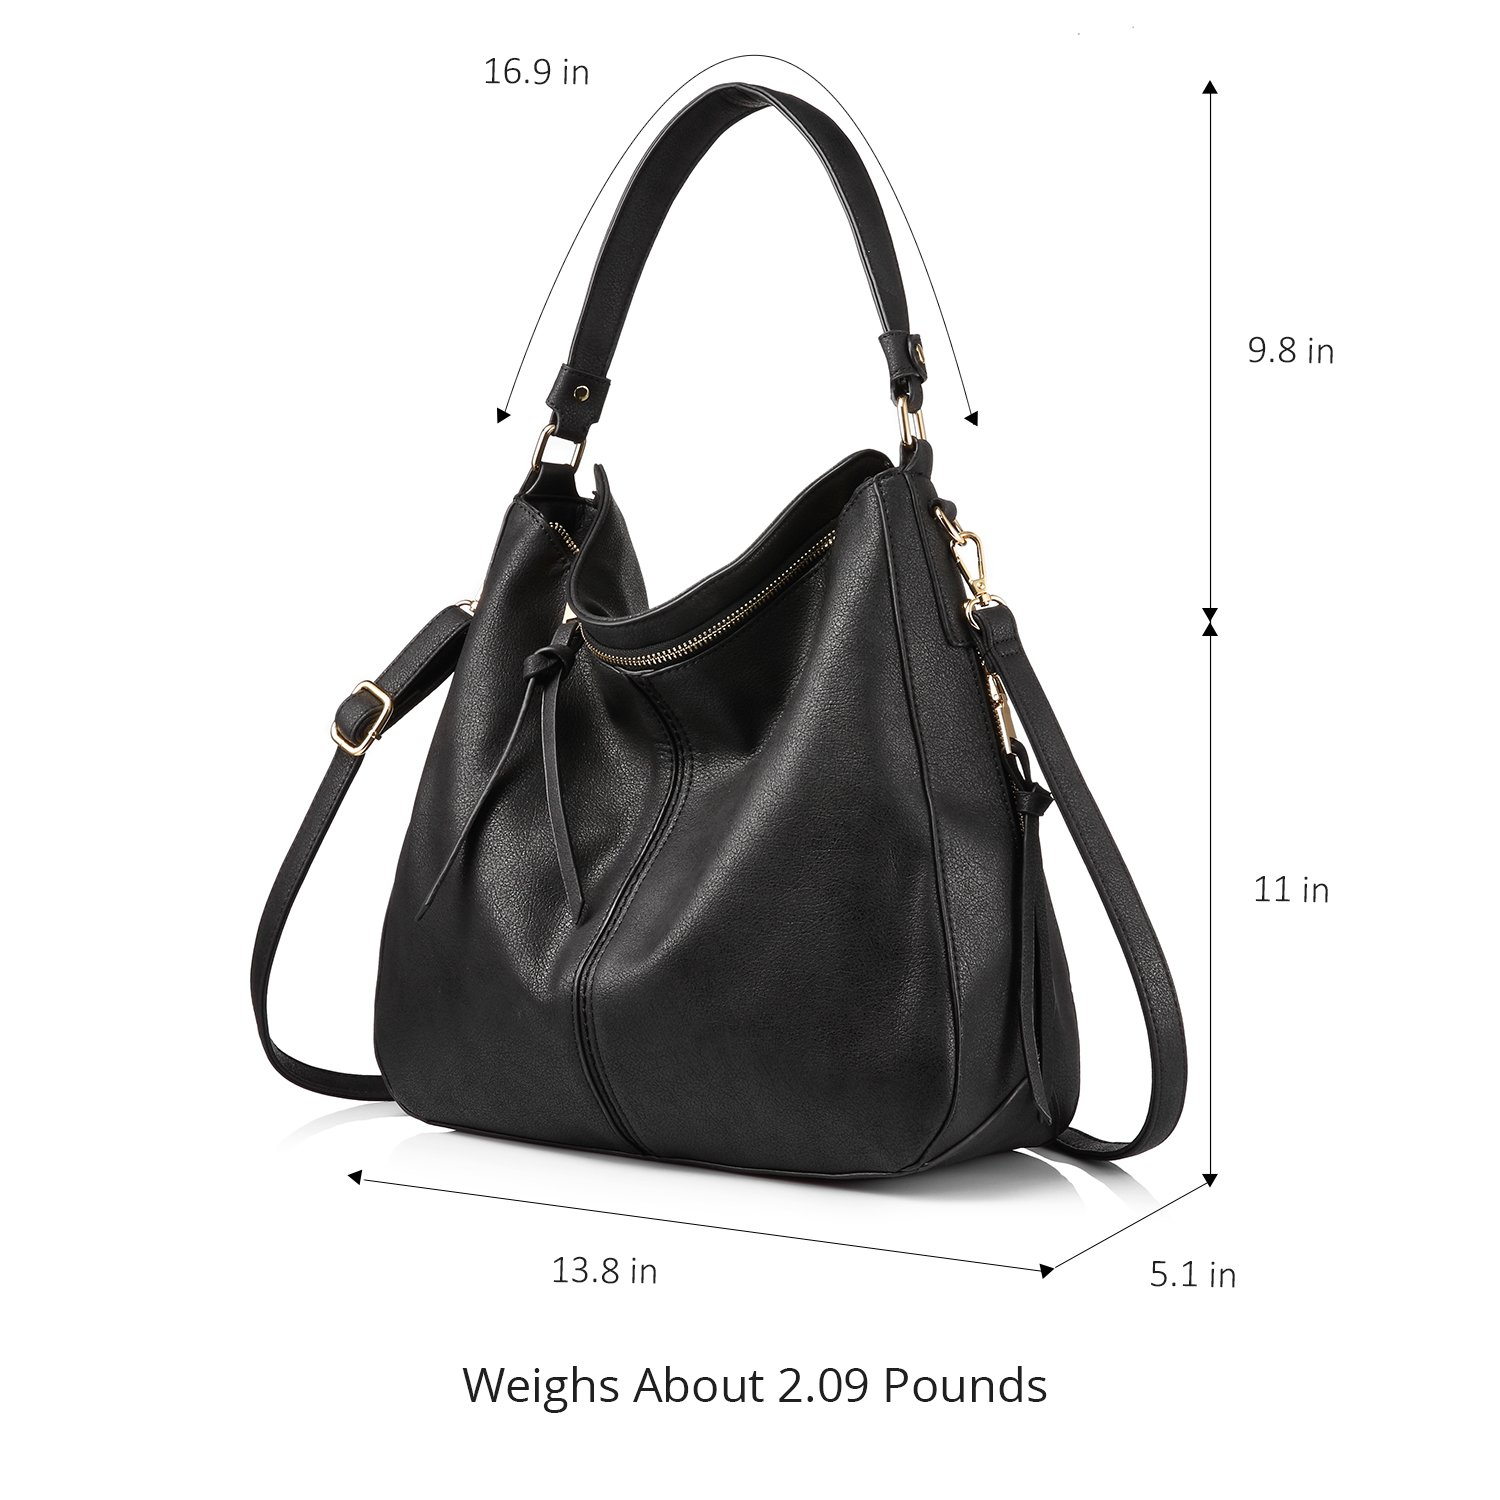 Shoulder Bags for Women Large Ladies Crossbody Bag with Tassel  Handbags   Amazon.com 359b8ea9cee92